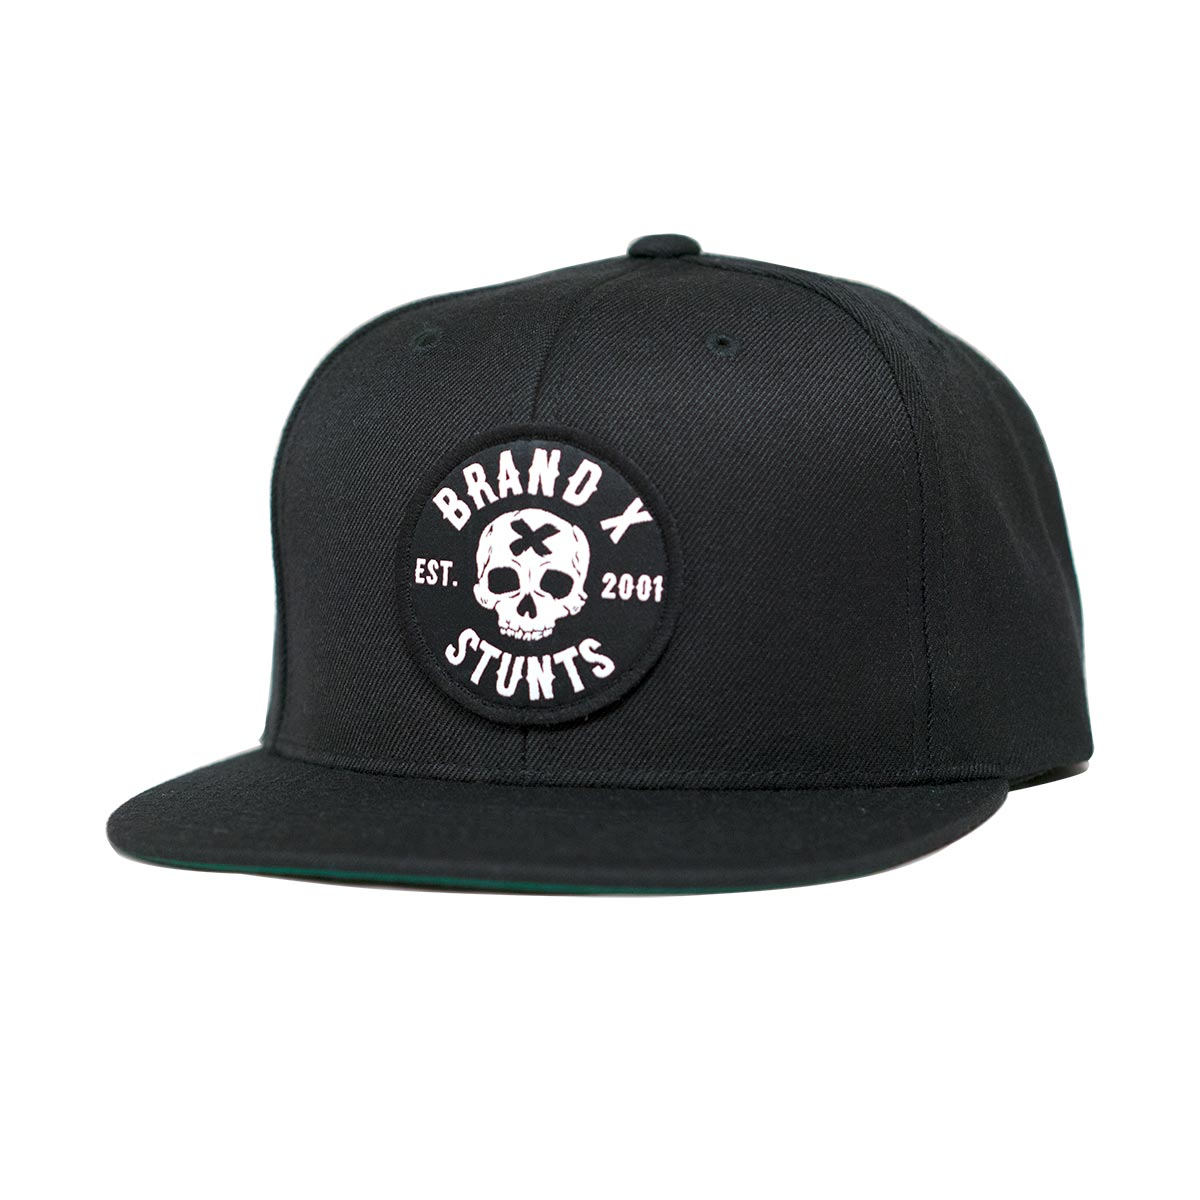 Brand X, X Man Hat - Black